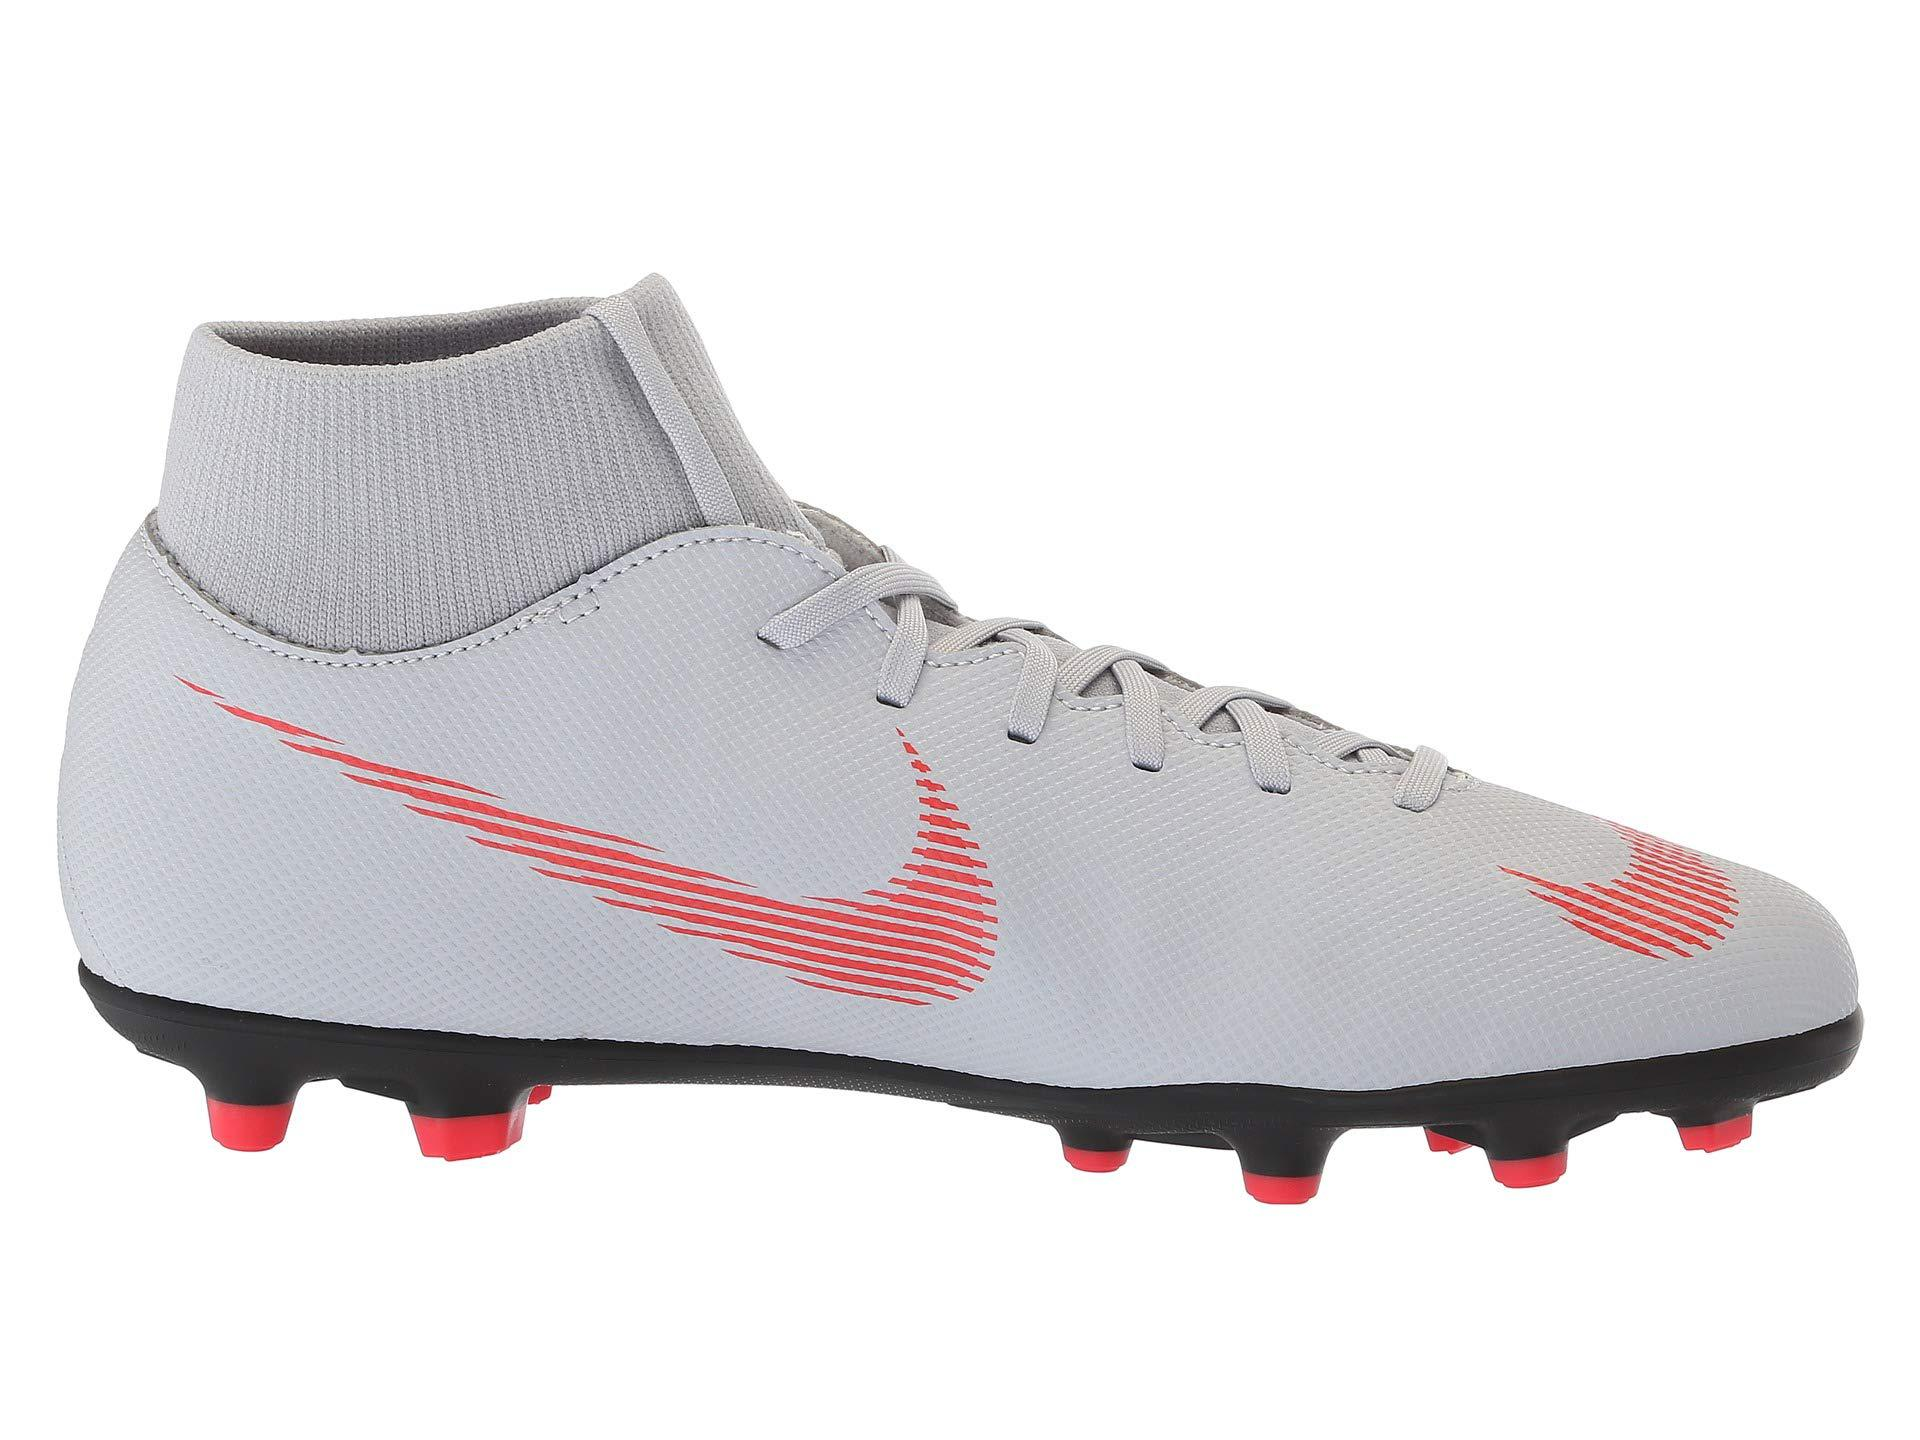 56b7ba4ed1d Lyst - Nike Adults  Superfly 6 Club Fg mg Fitness Shoes in Gray for Men